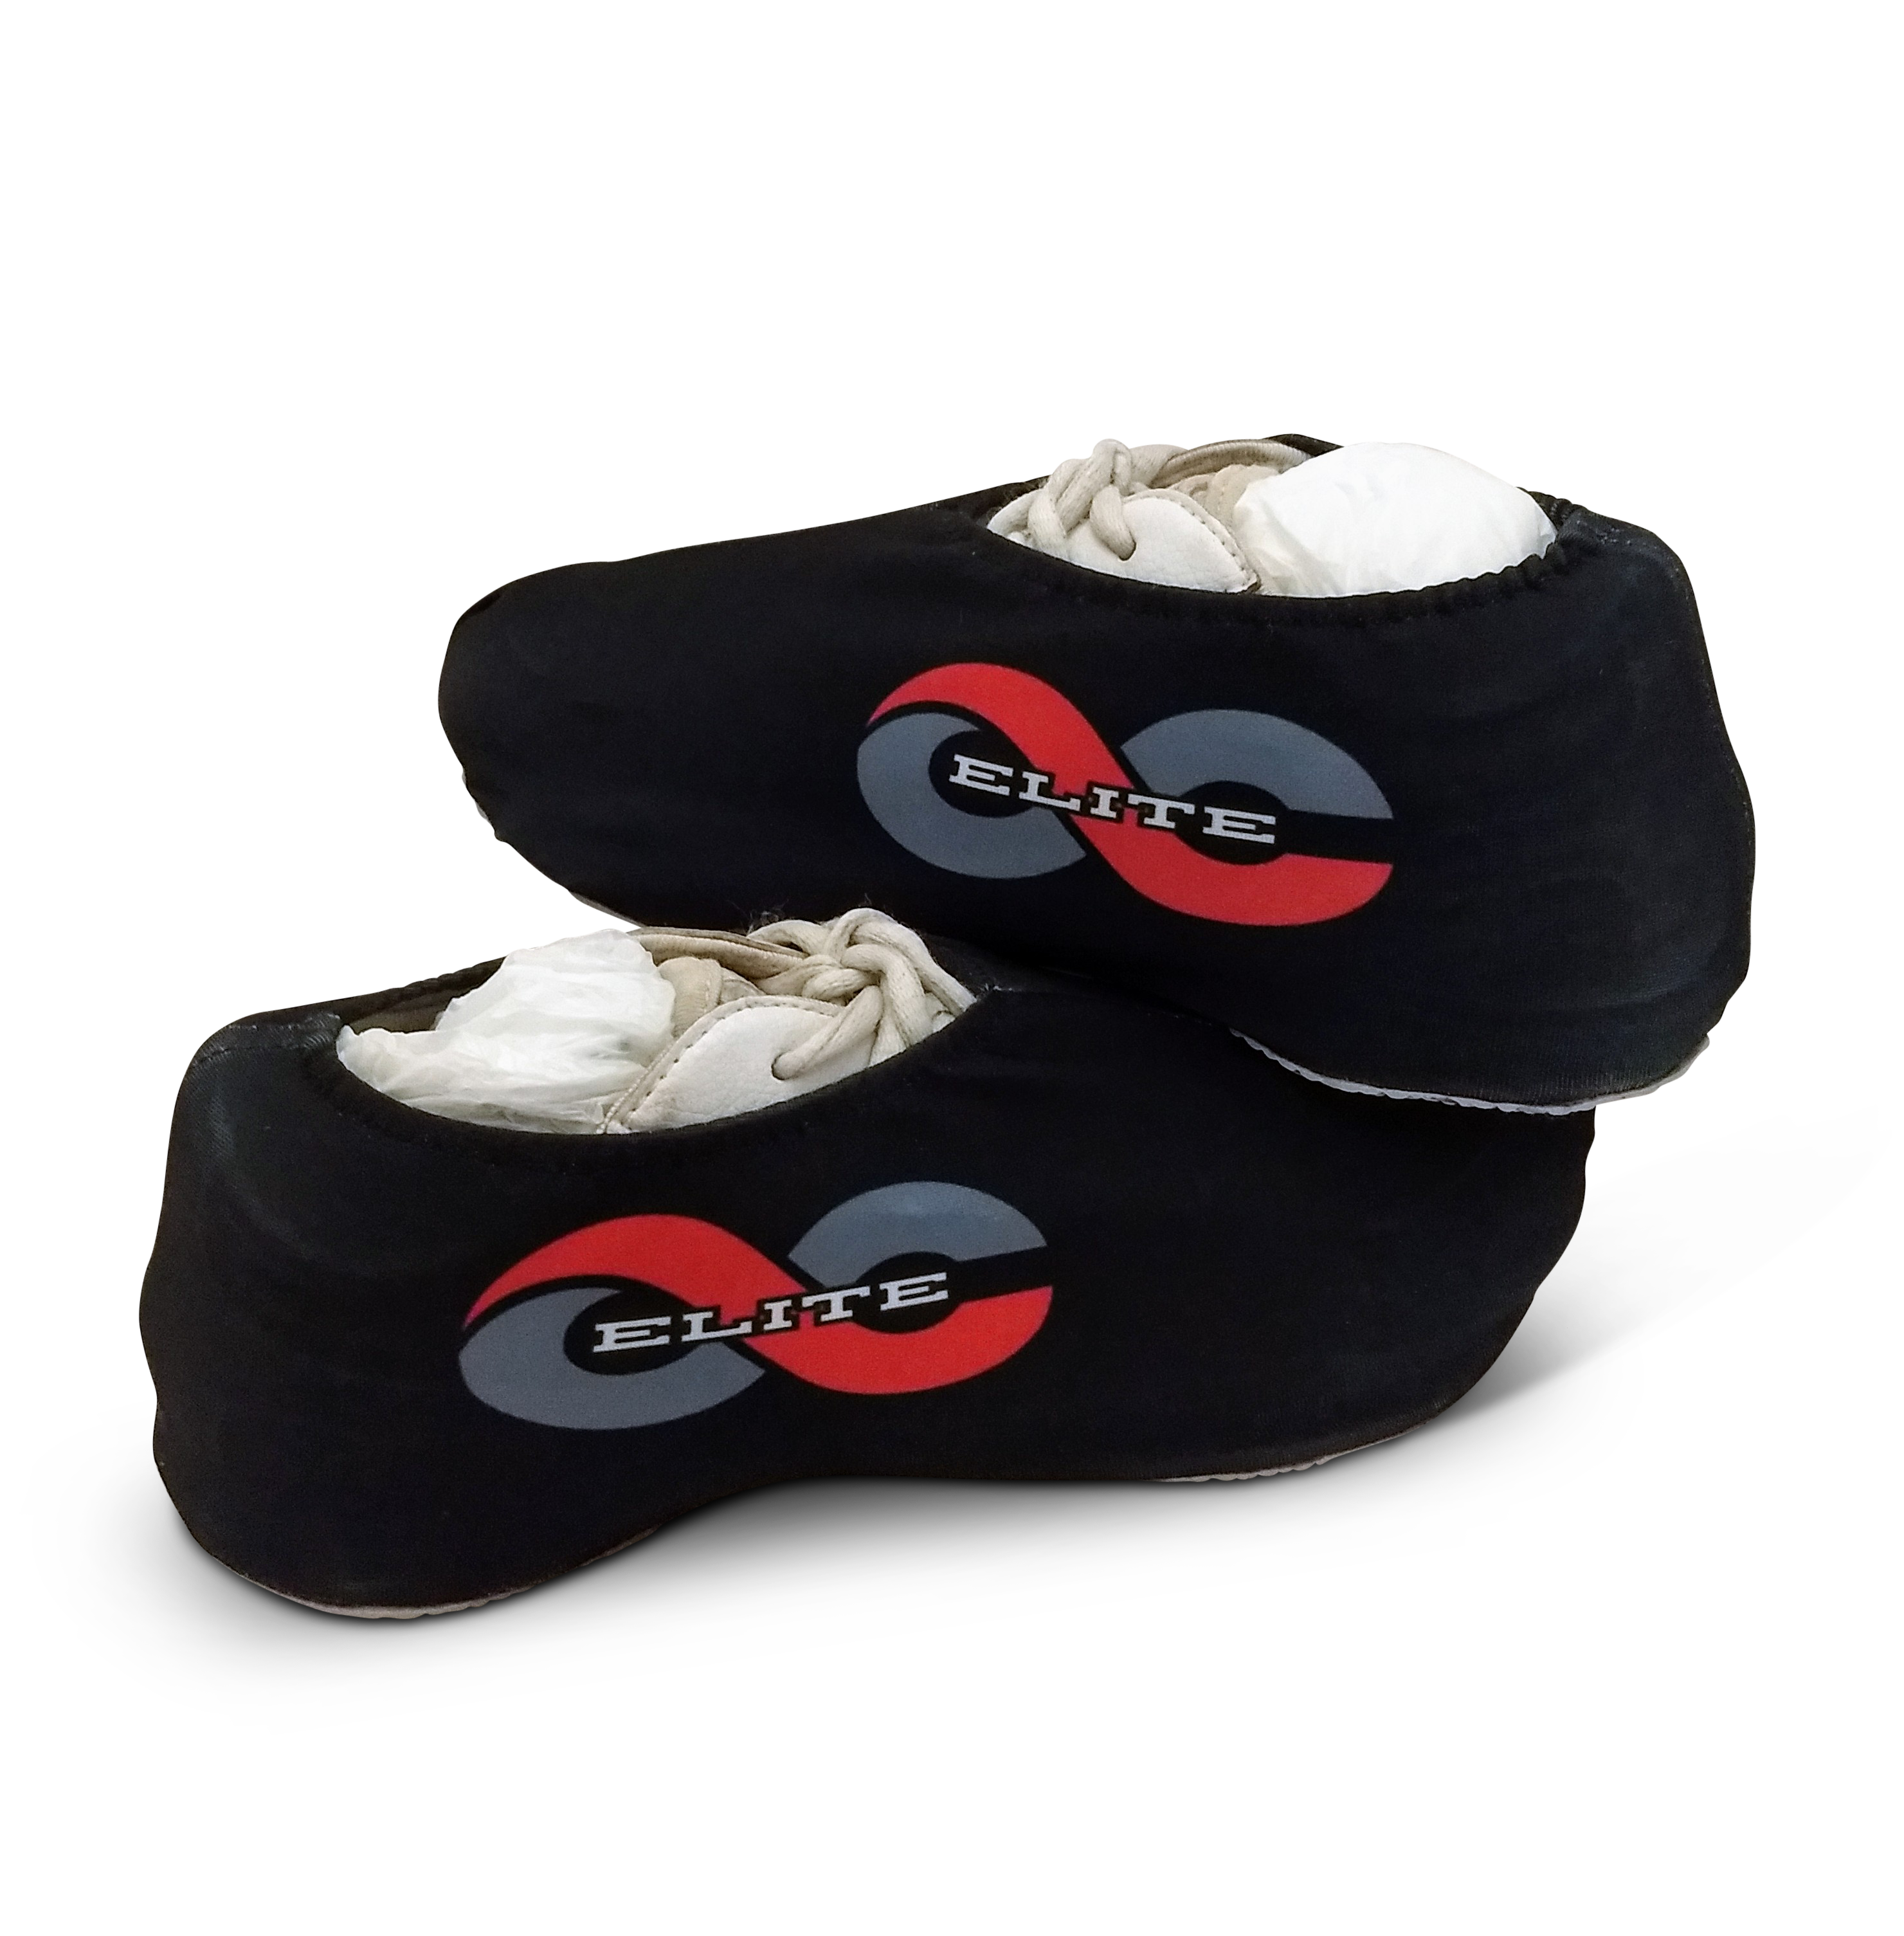 Oconee Elite - Cheer Shoe Covers 00001